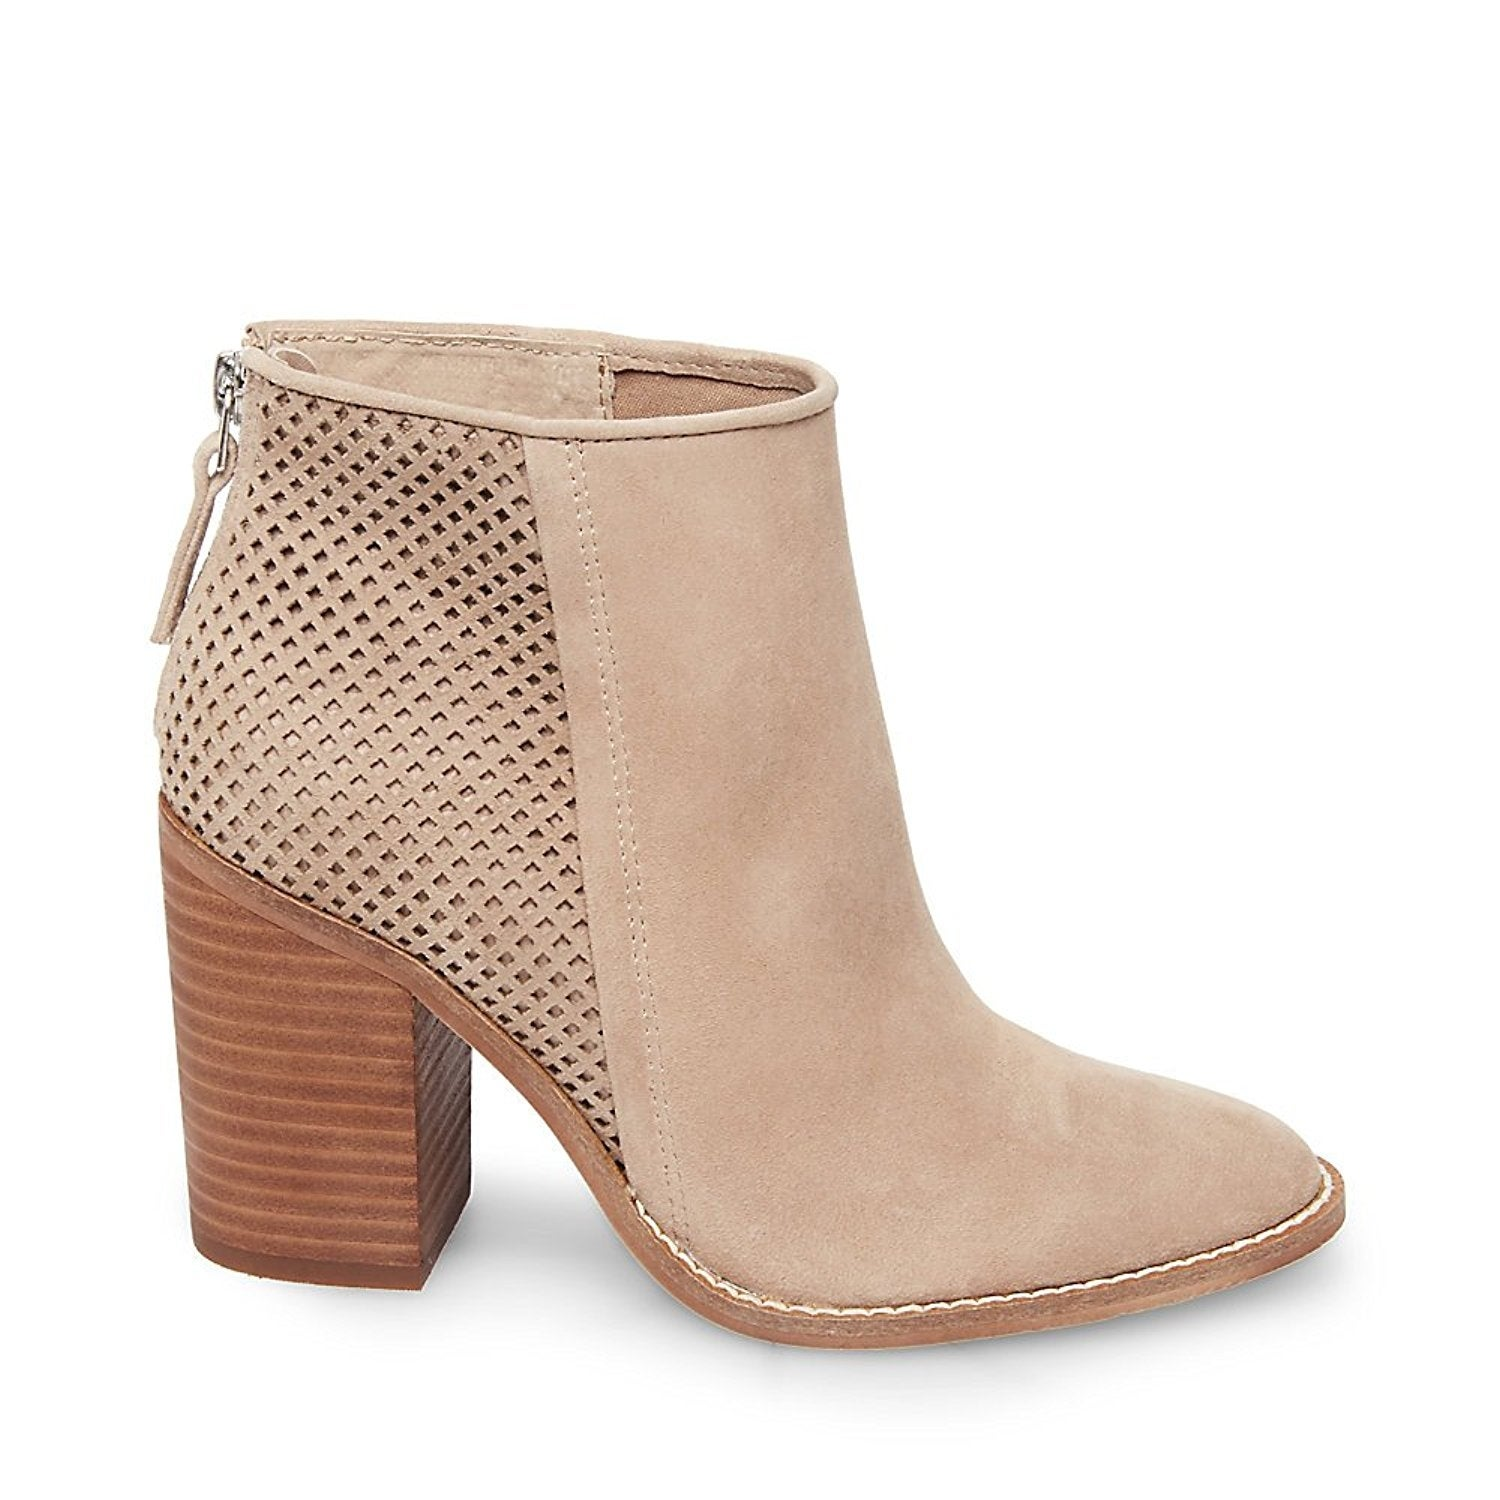 36605bcba15 Steve Madden Womens Replay Leather Almond Toe Ankle Fashion Boots